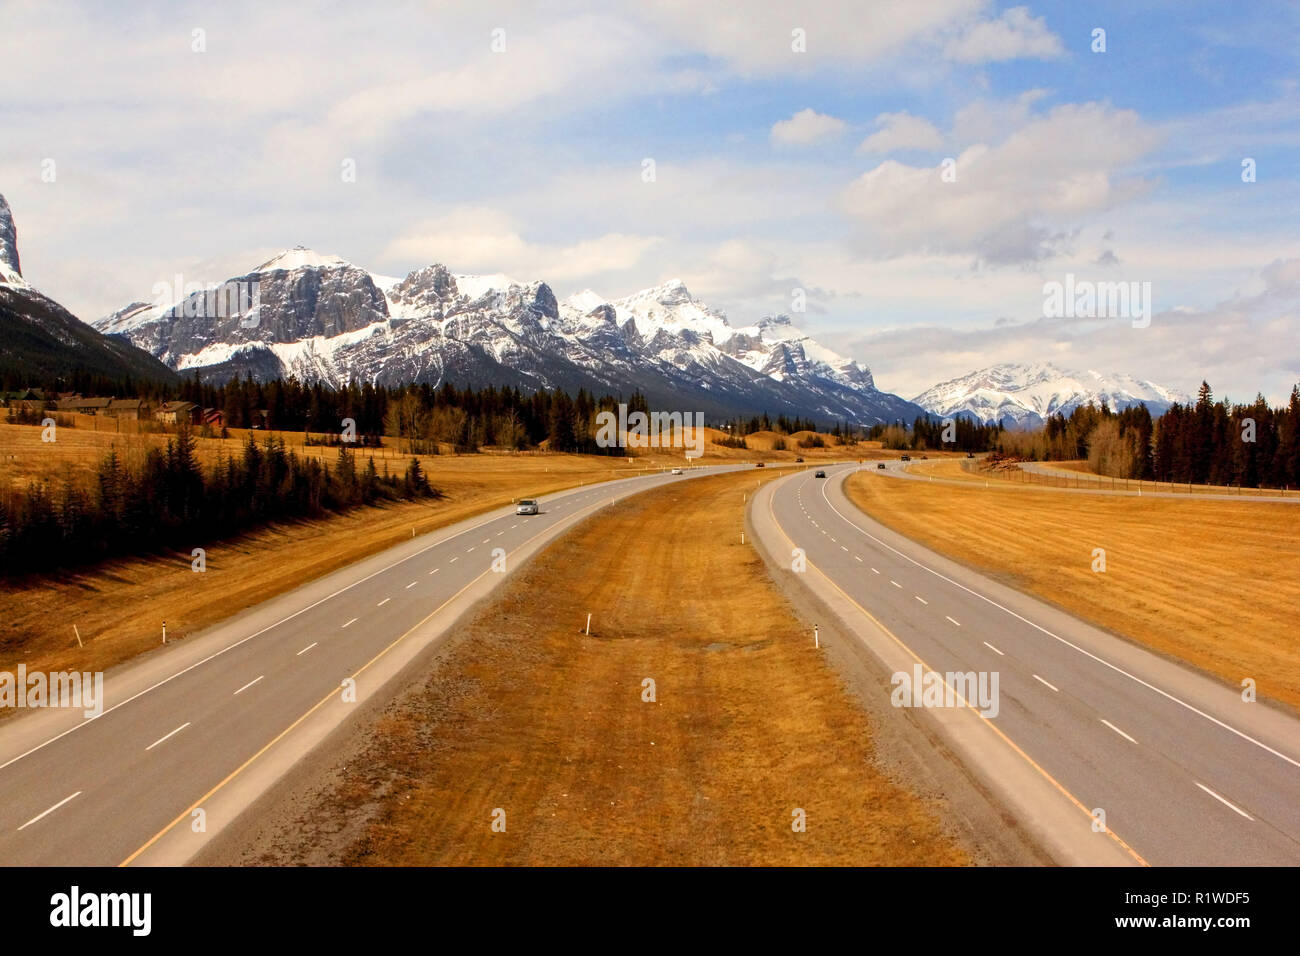 Road to  the Rockies in alberta, Canada Stock Photo